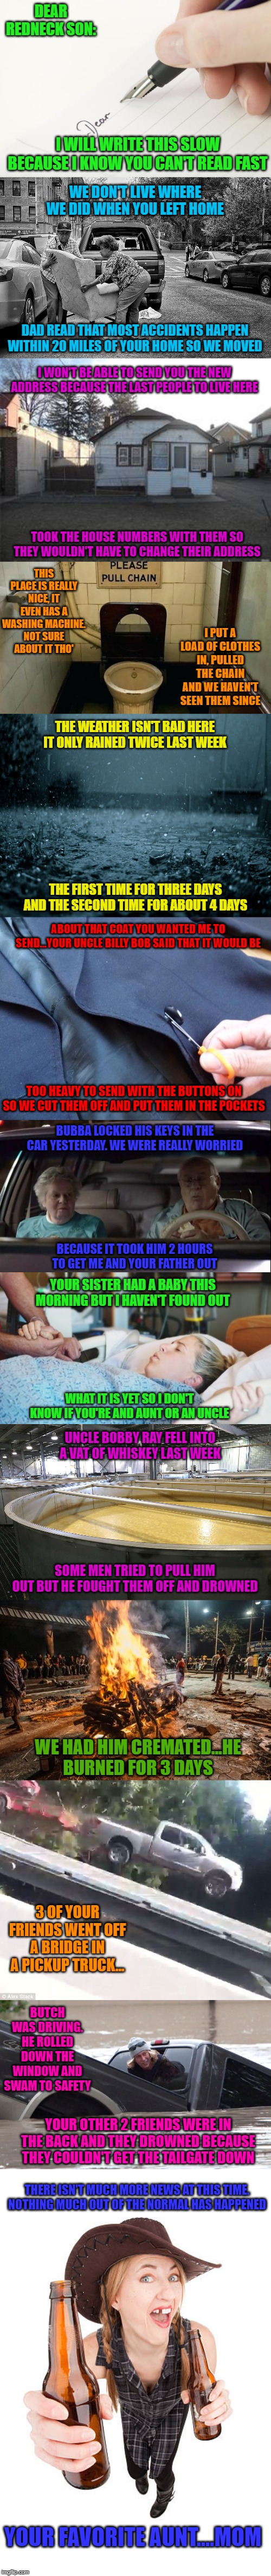 "For my 21 million point meme I give you ""The Redneck Letter"". Thank you all for your continued support!!! 